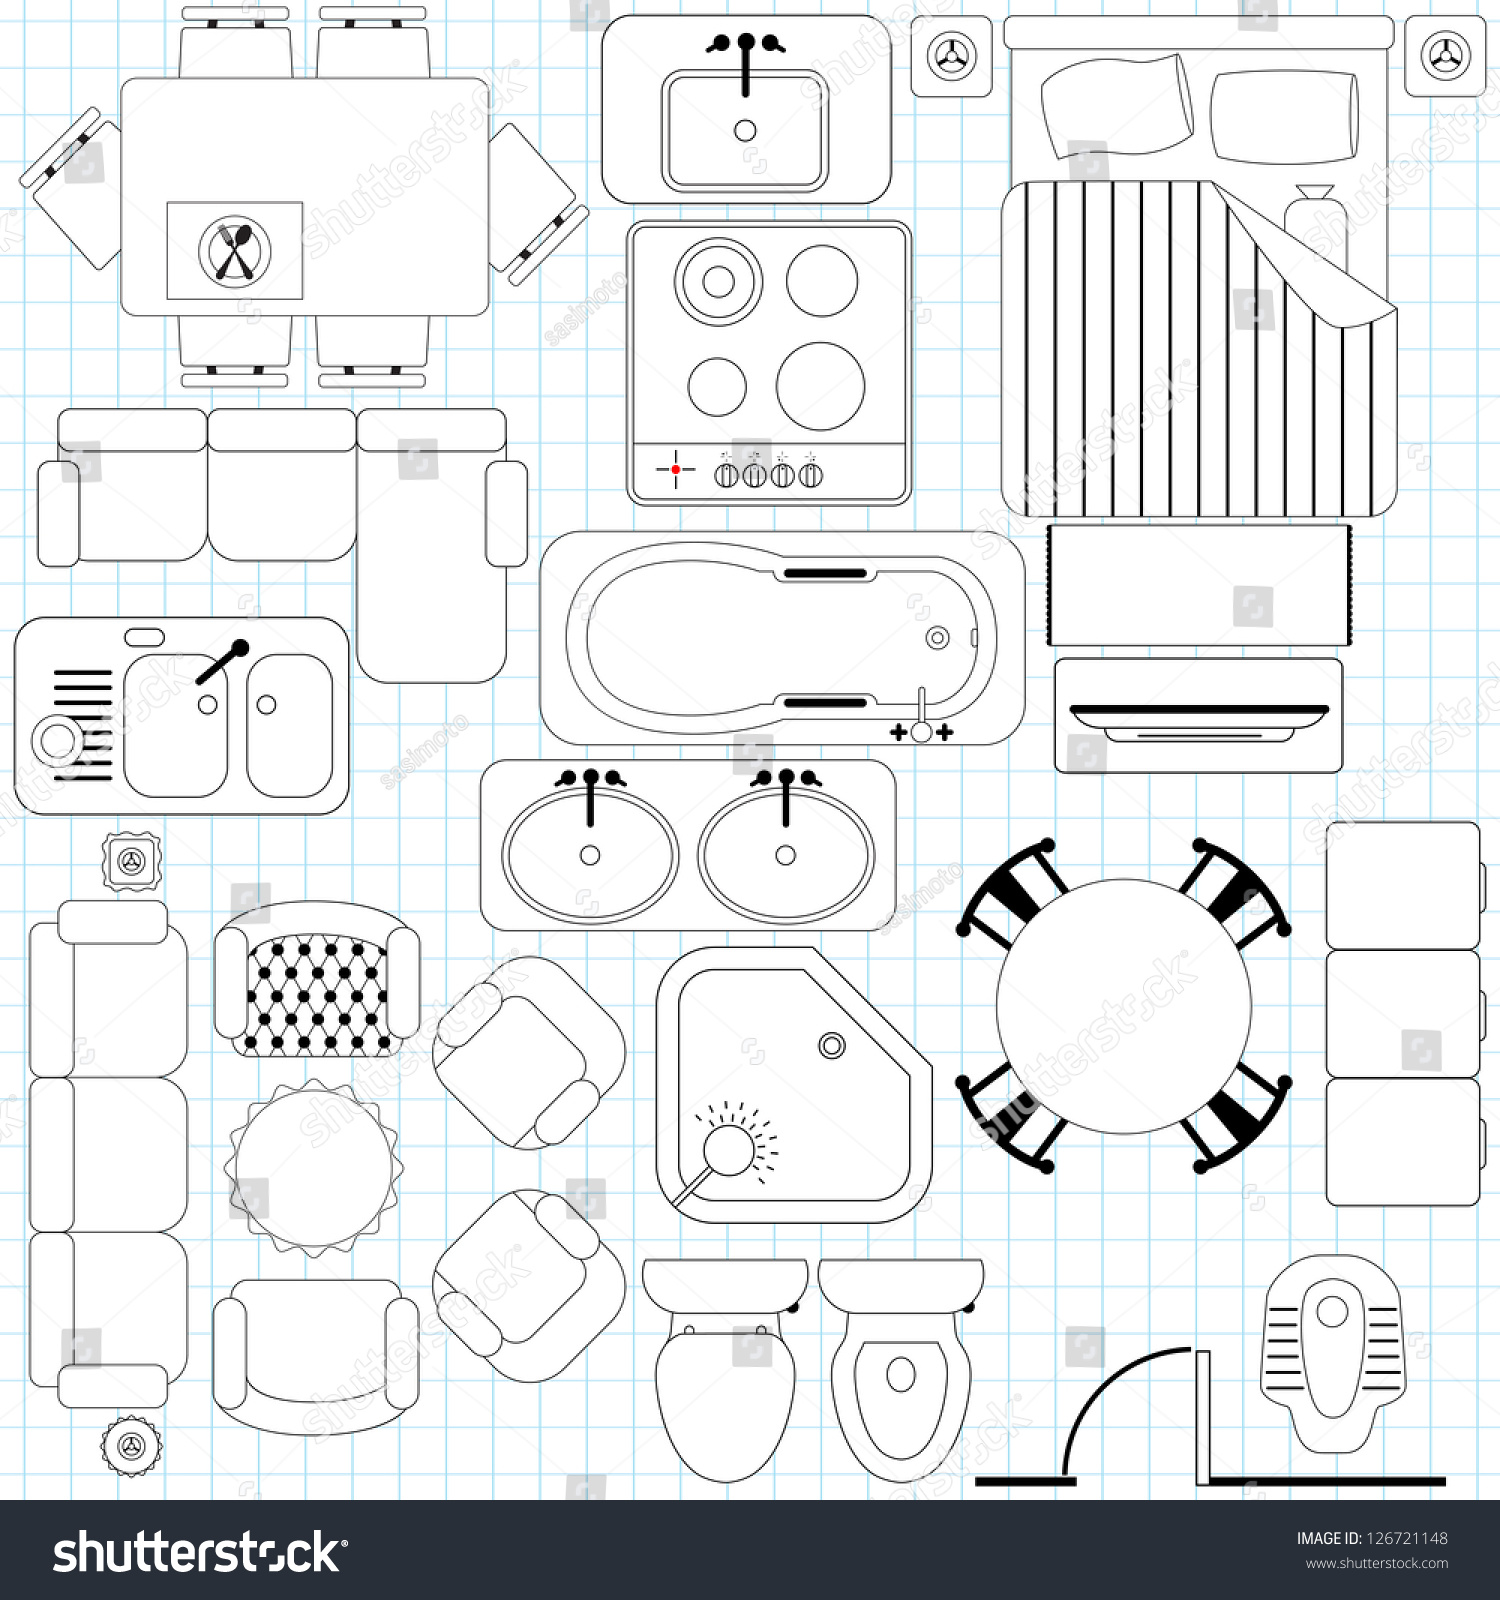 Outline Vector Icons Collection As Design Elements A Set